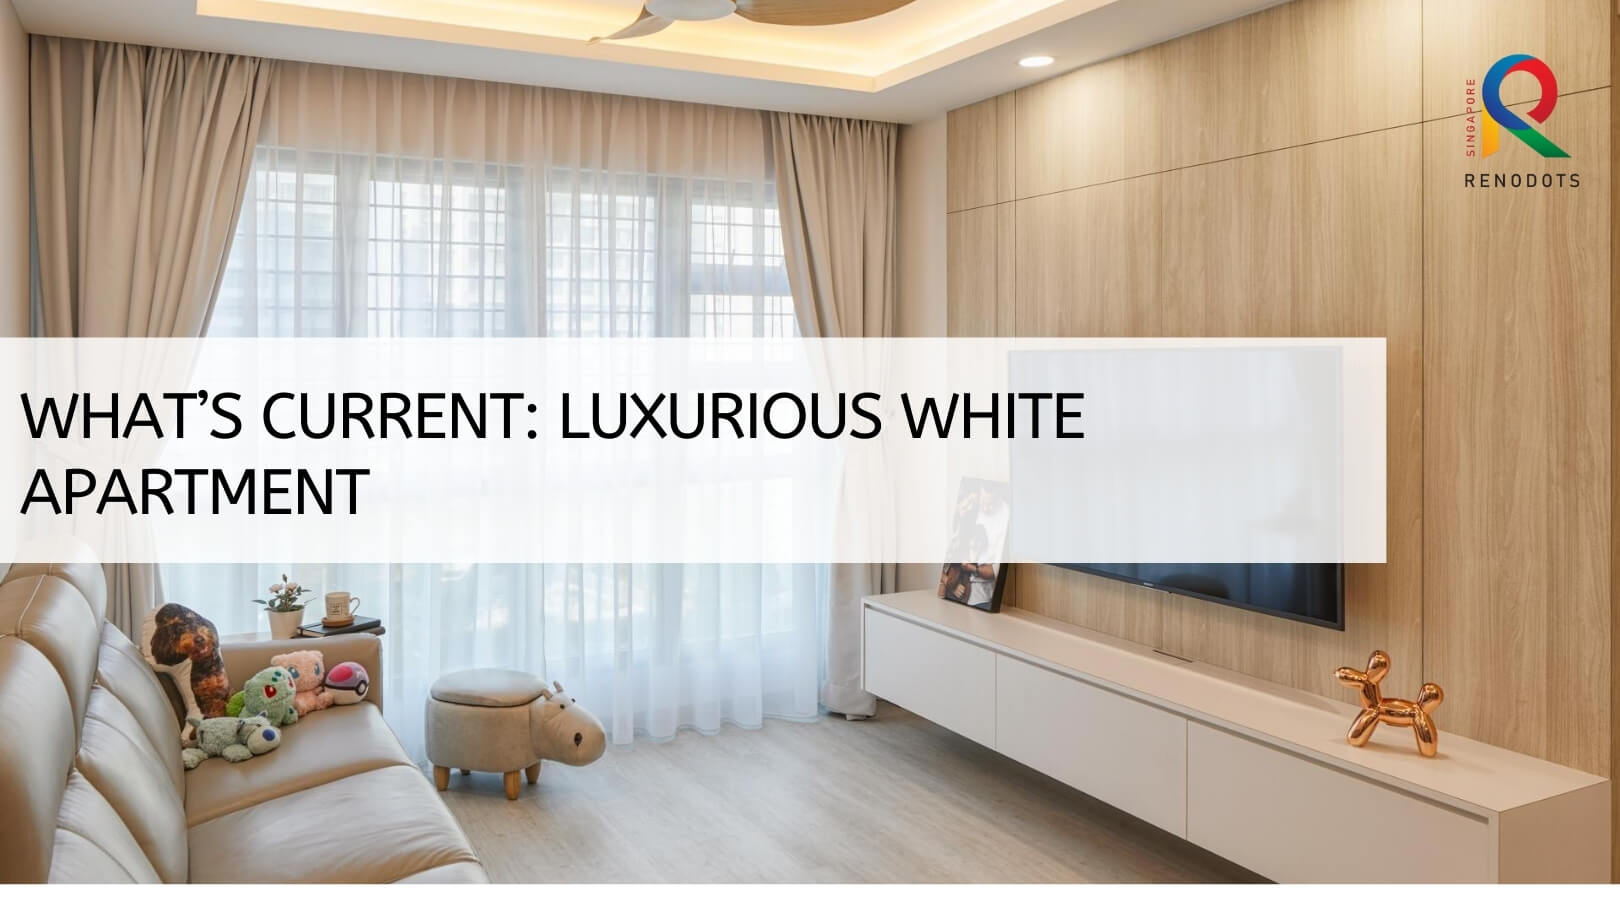 What's Current: Luxurious White Apartment